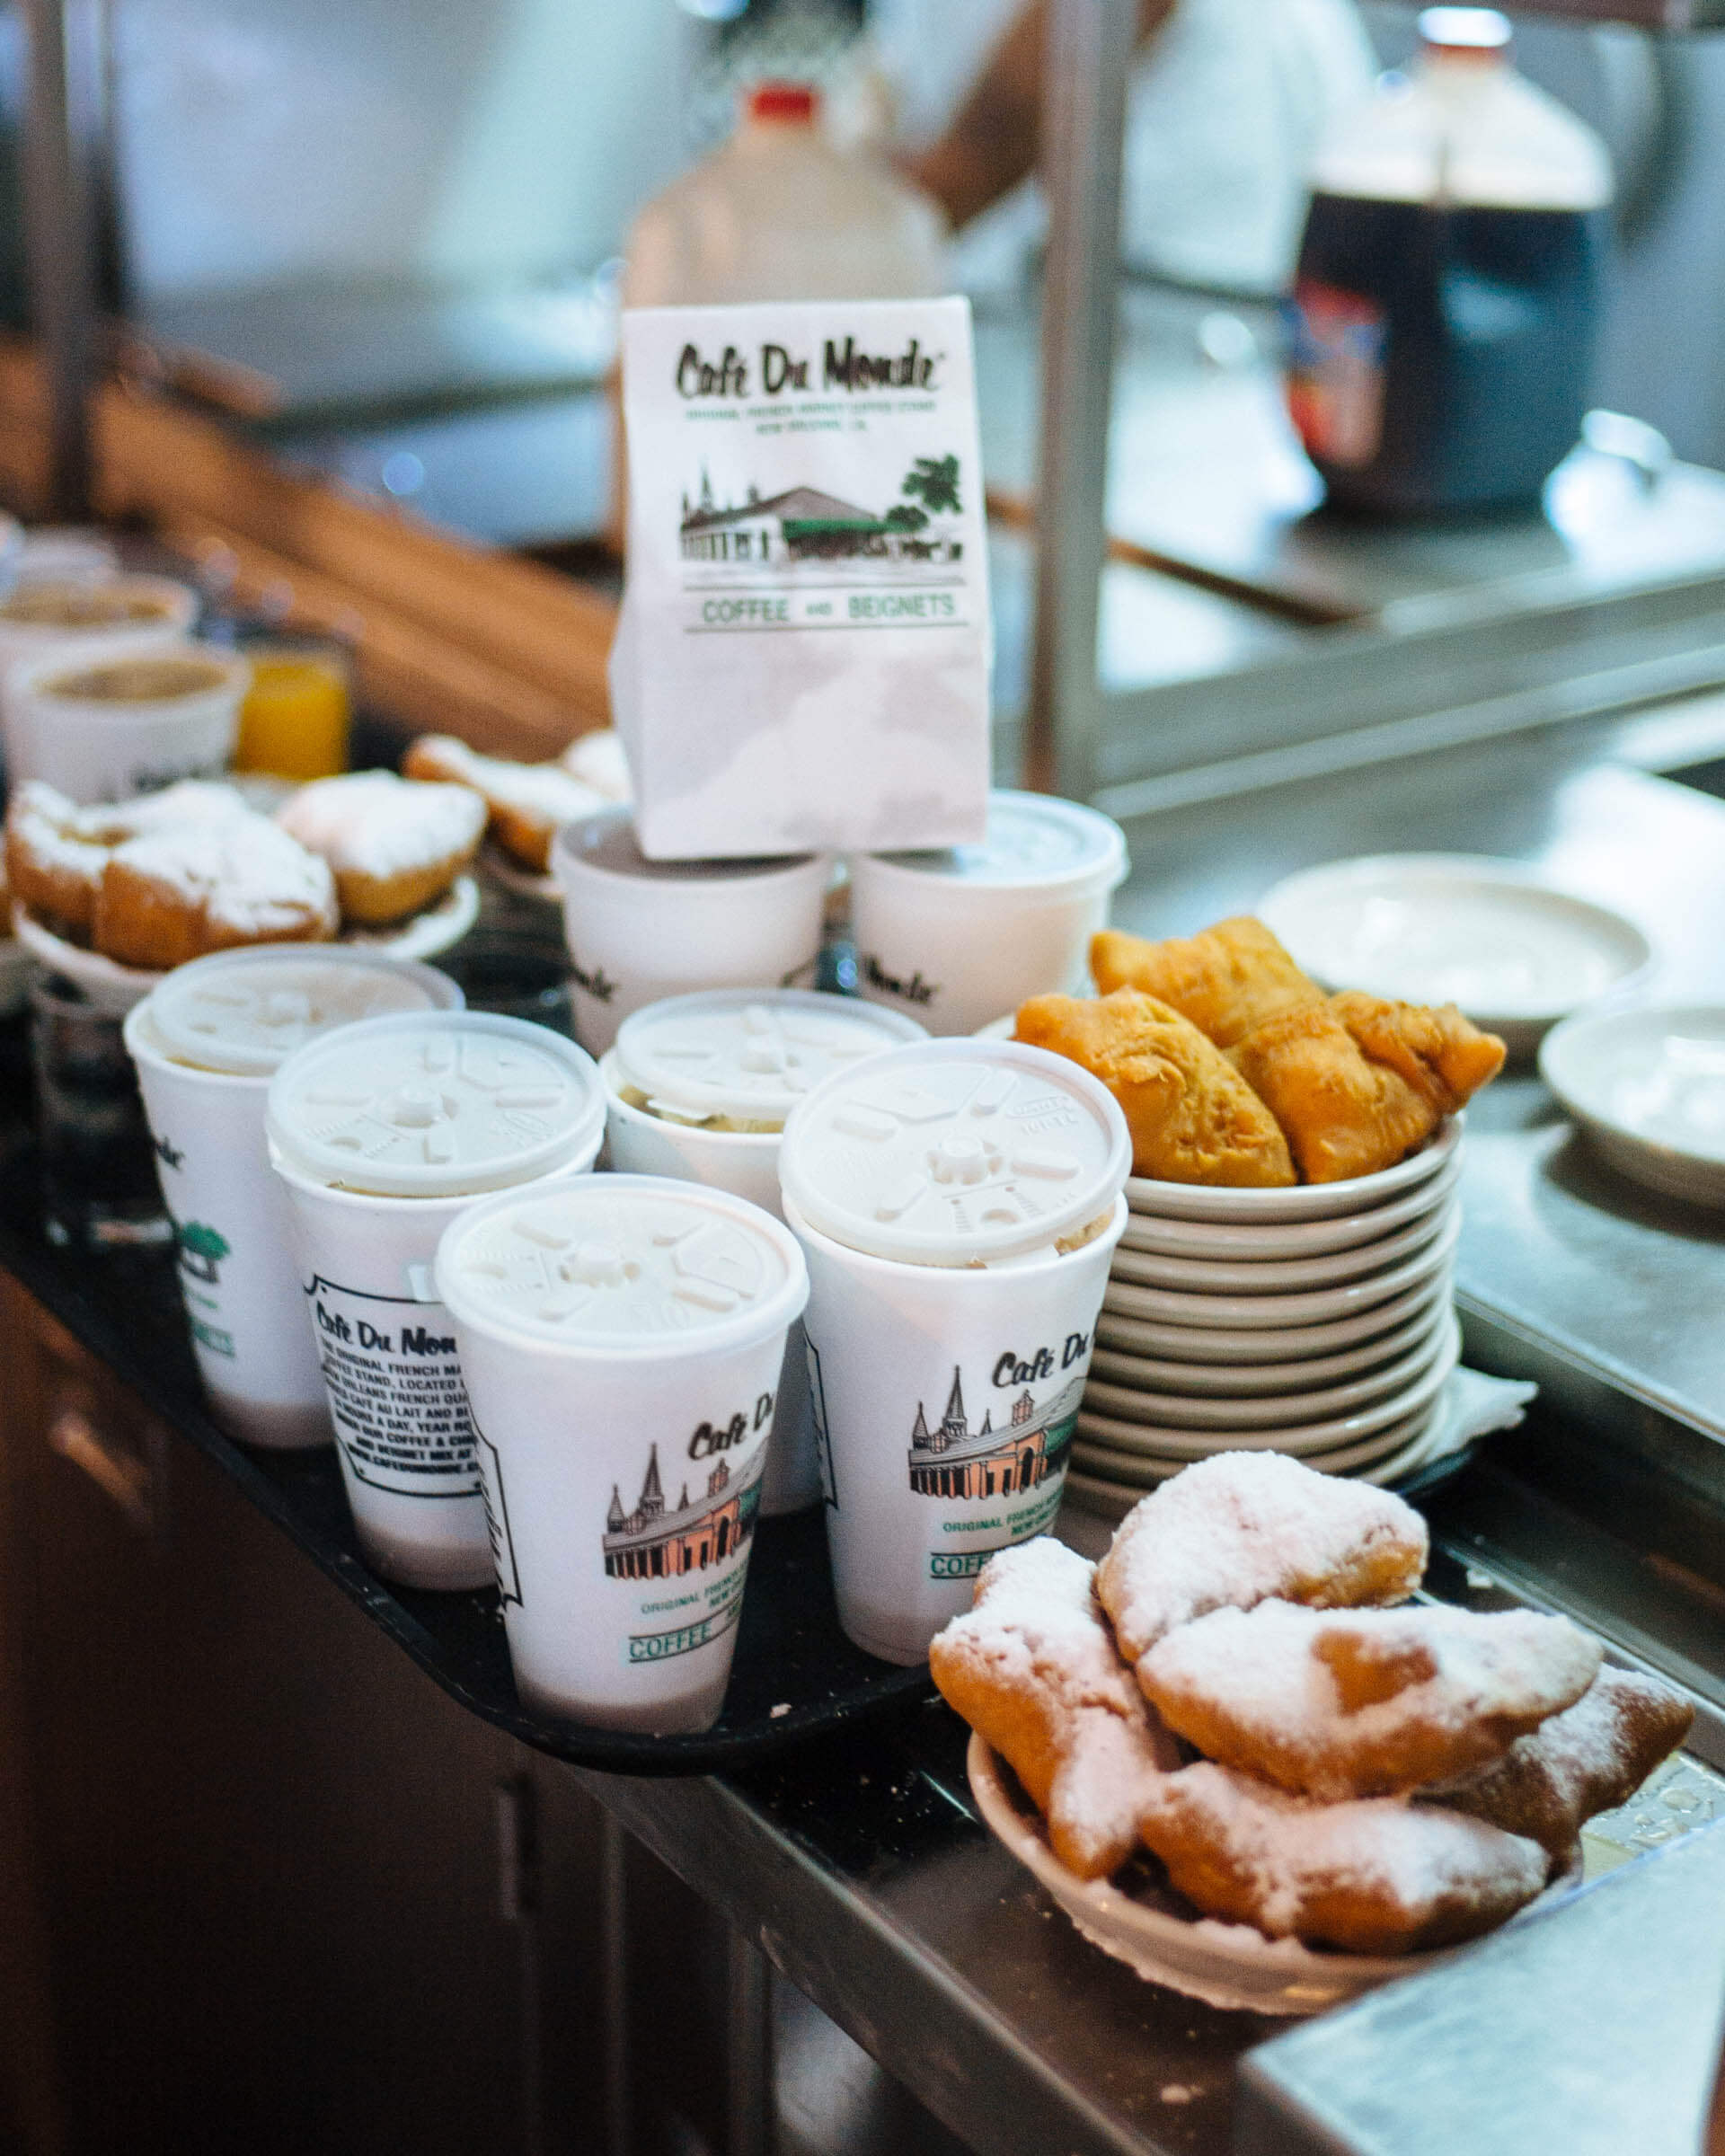 Where to get the best beignets cafe du monde in non touristy beignets in New Orleans, The Taste SF